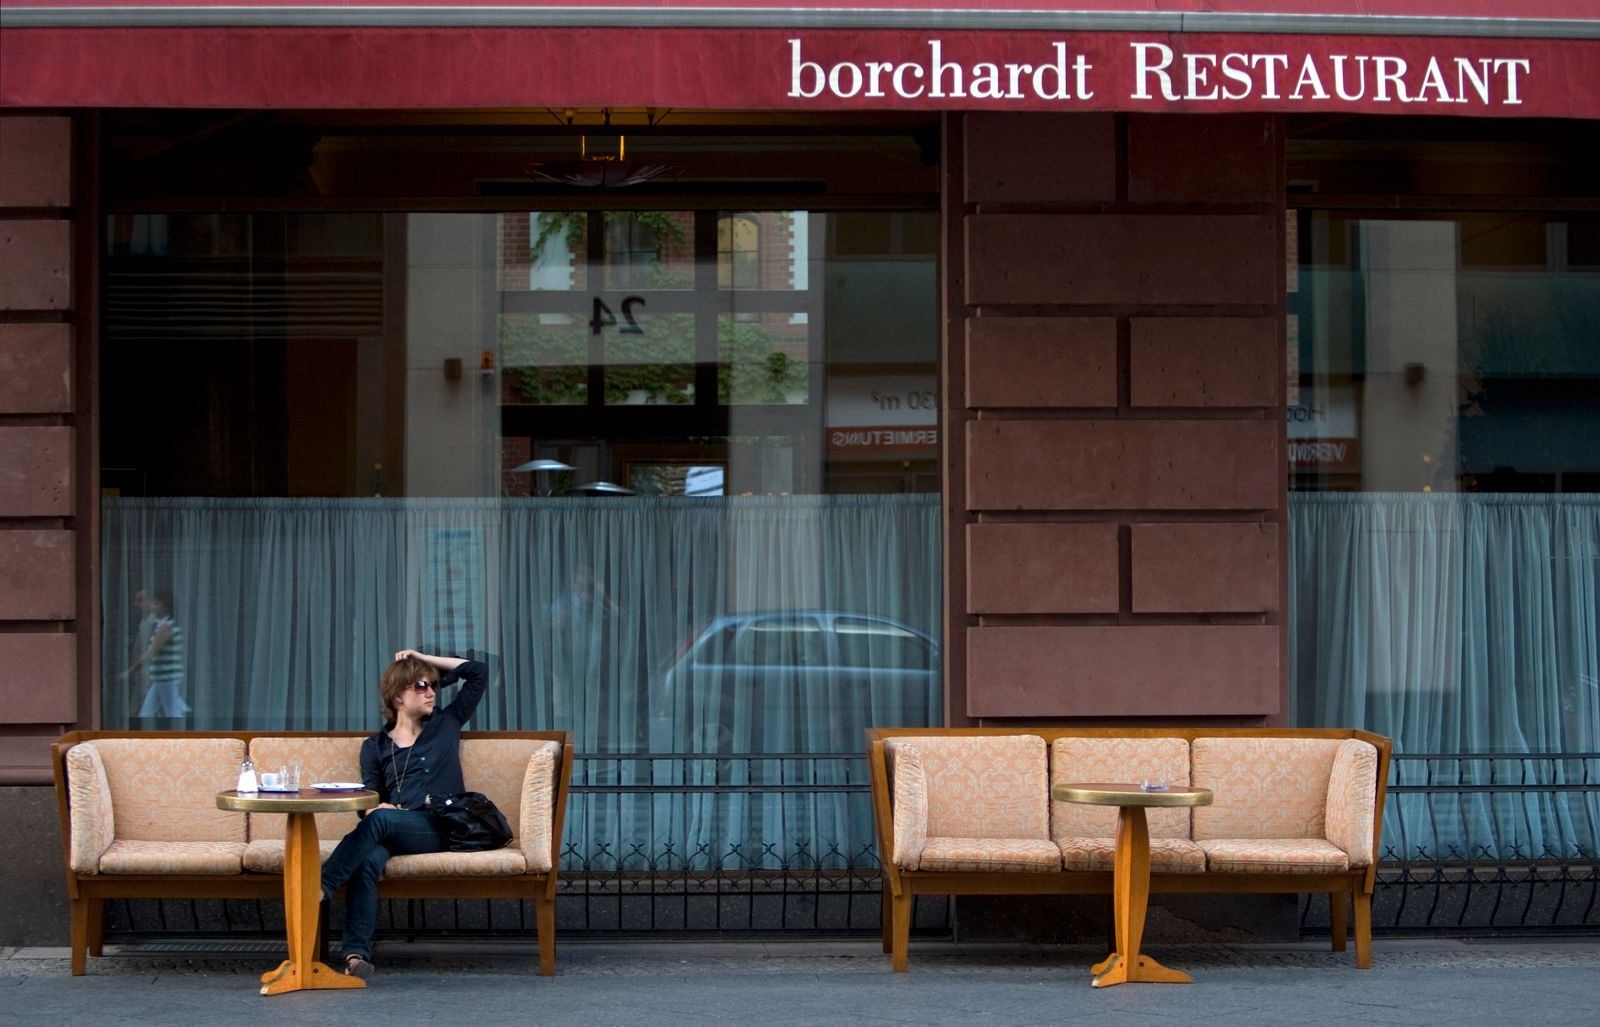 A woman sits outside the Borchardt restaurant in Berlin